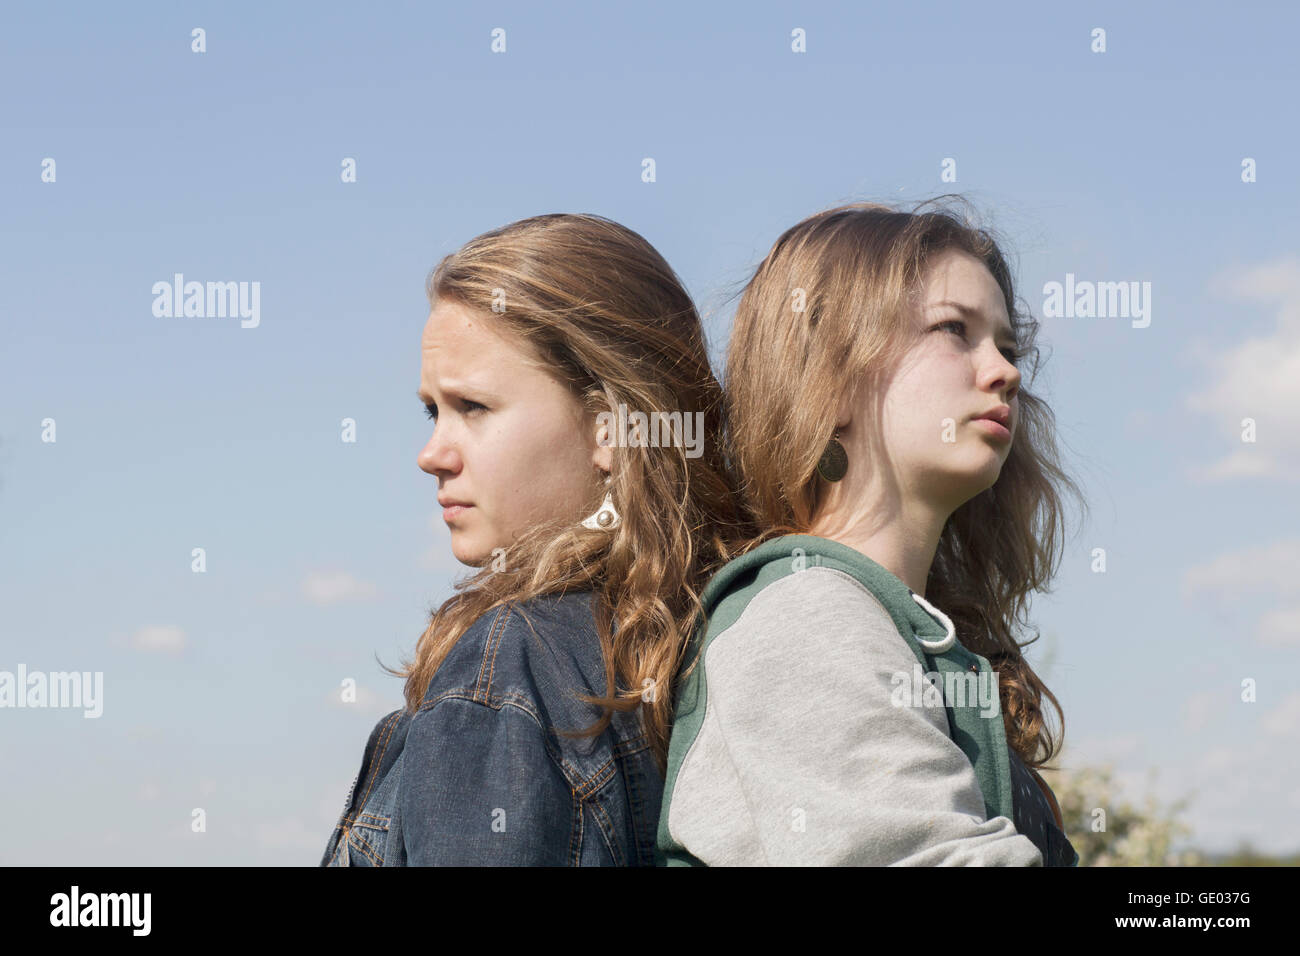 Teenage girls looking in different ways, Freiburg im Breisgau, Baden-Württemberg, Germany - Stock Image